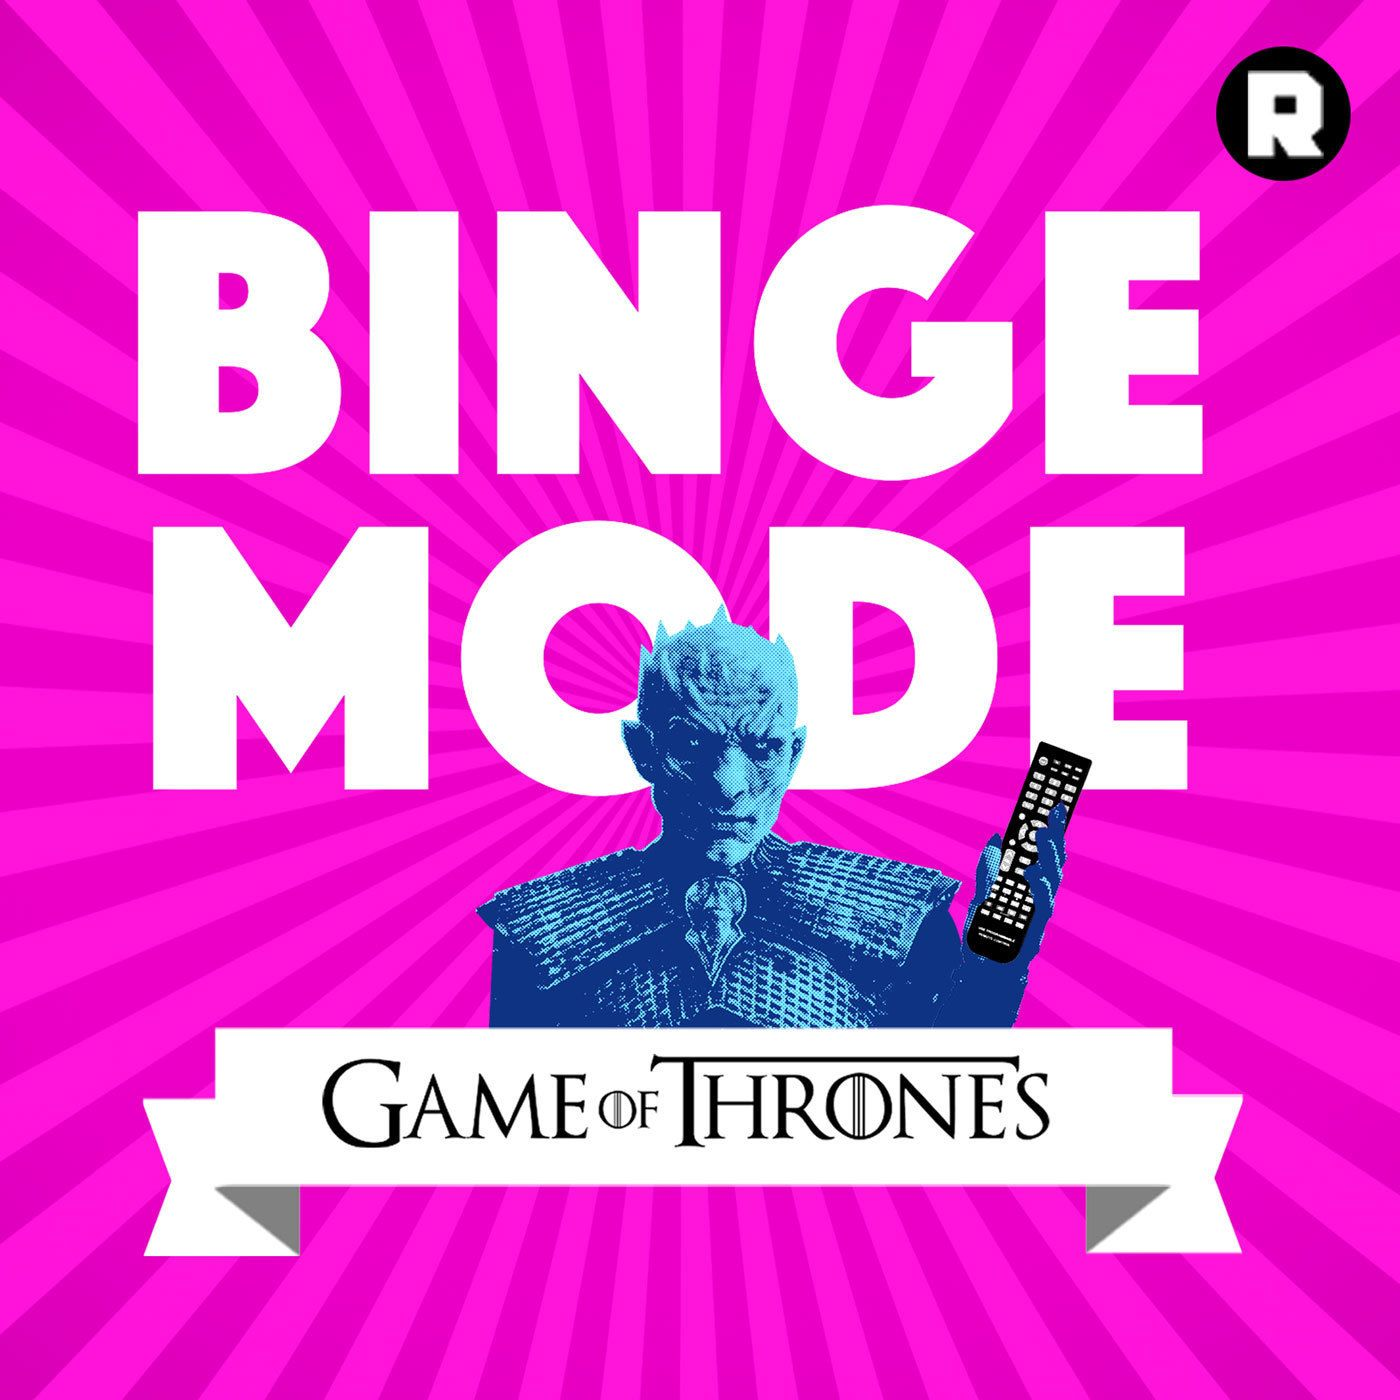 S2E7: A Man Without Honor | Game of Thrones